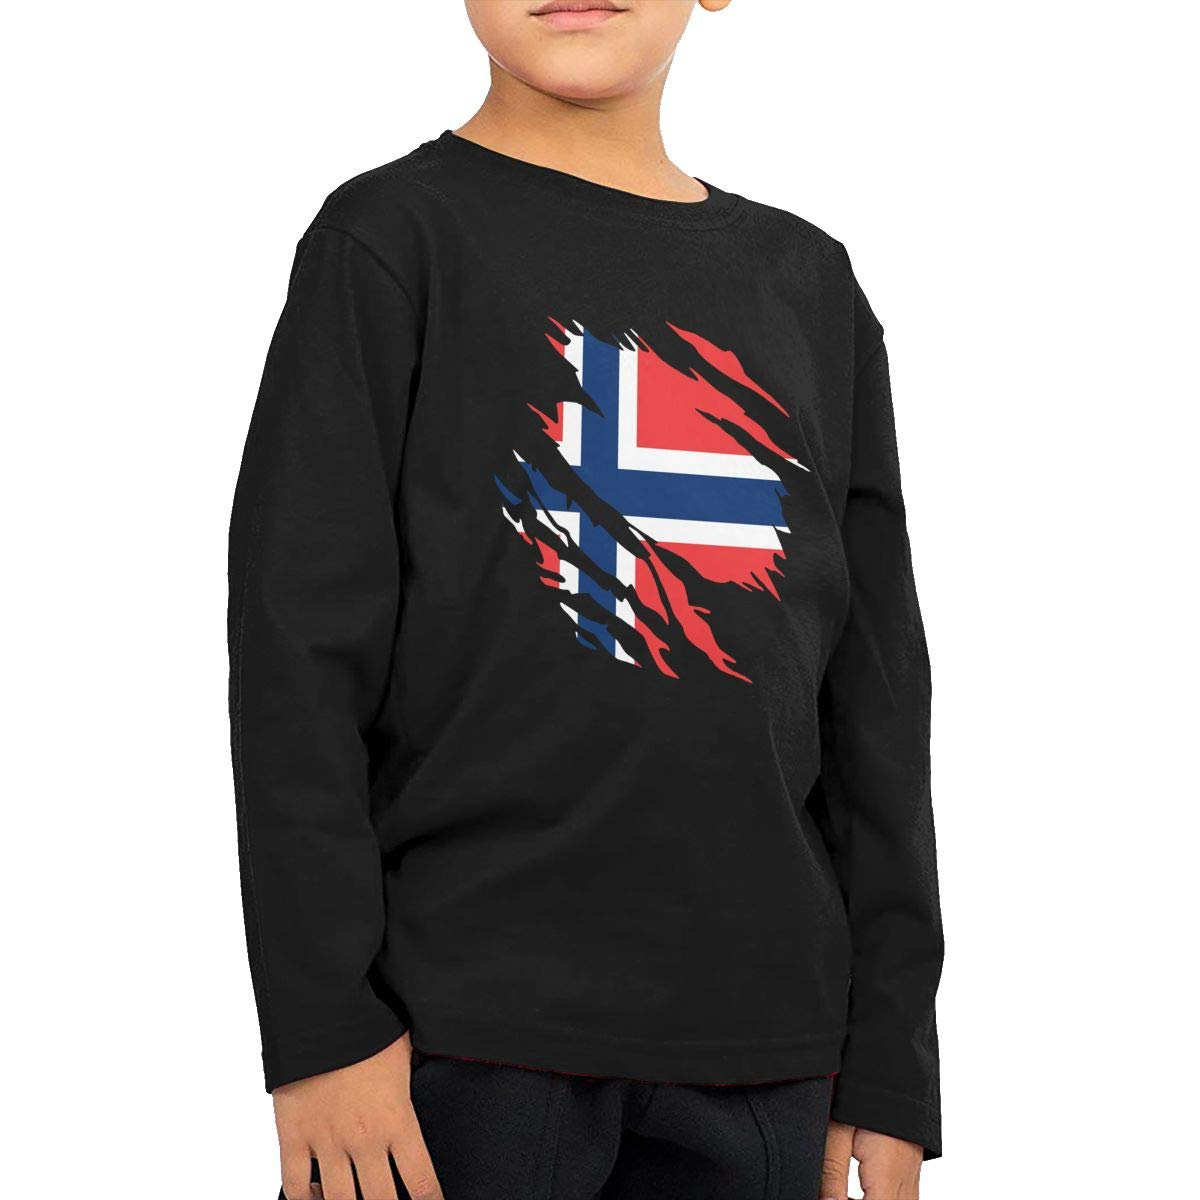 UGFGF-S1 Ripped Norway Flag Fashion Toddler Children Baby Boys Girls Long Sleeve Shirt Clothes